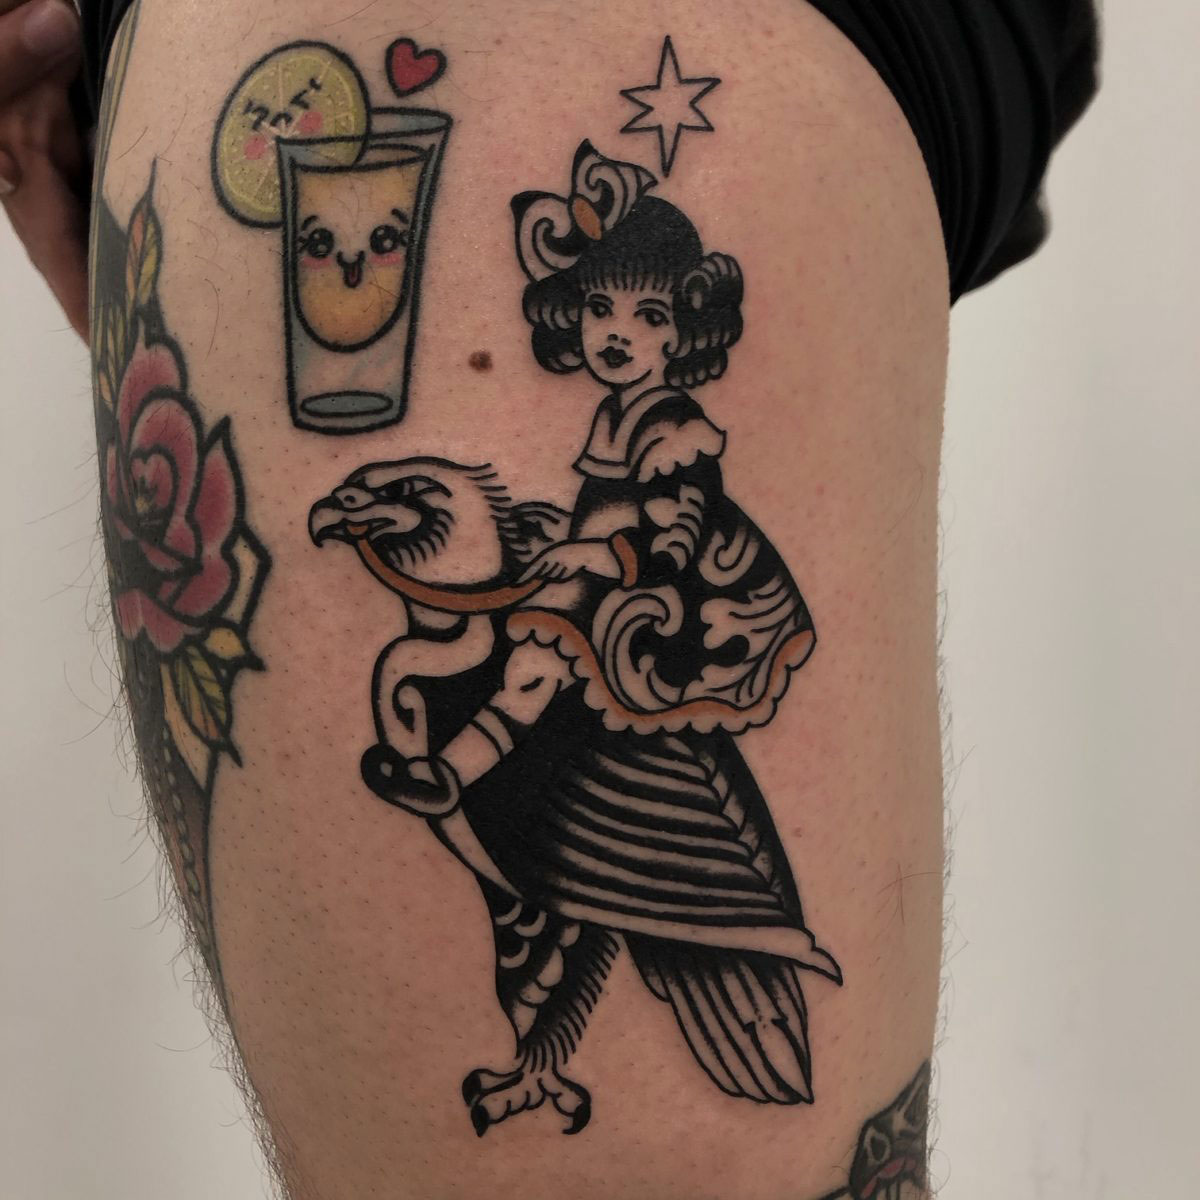 traditional tattoo of a girl riding an eagle with a harness and an ornate art deco dress